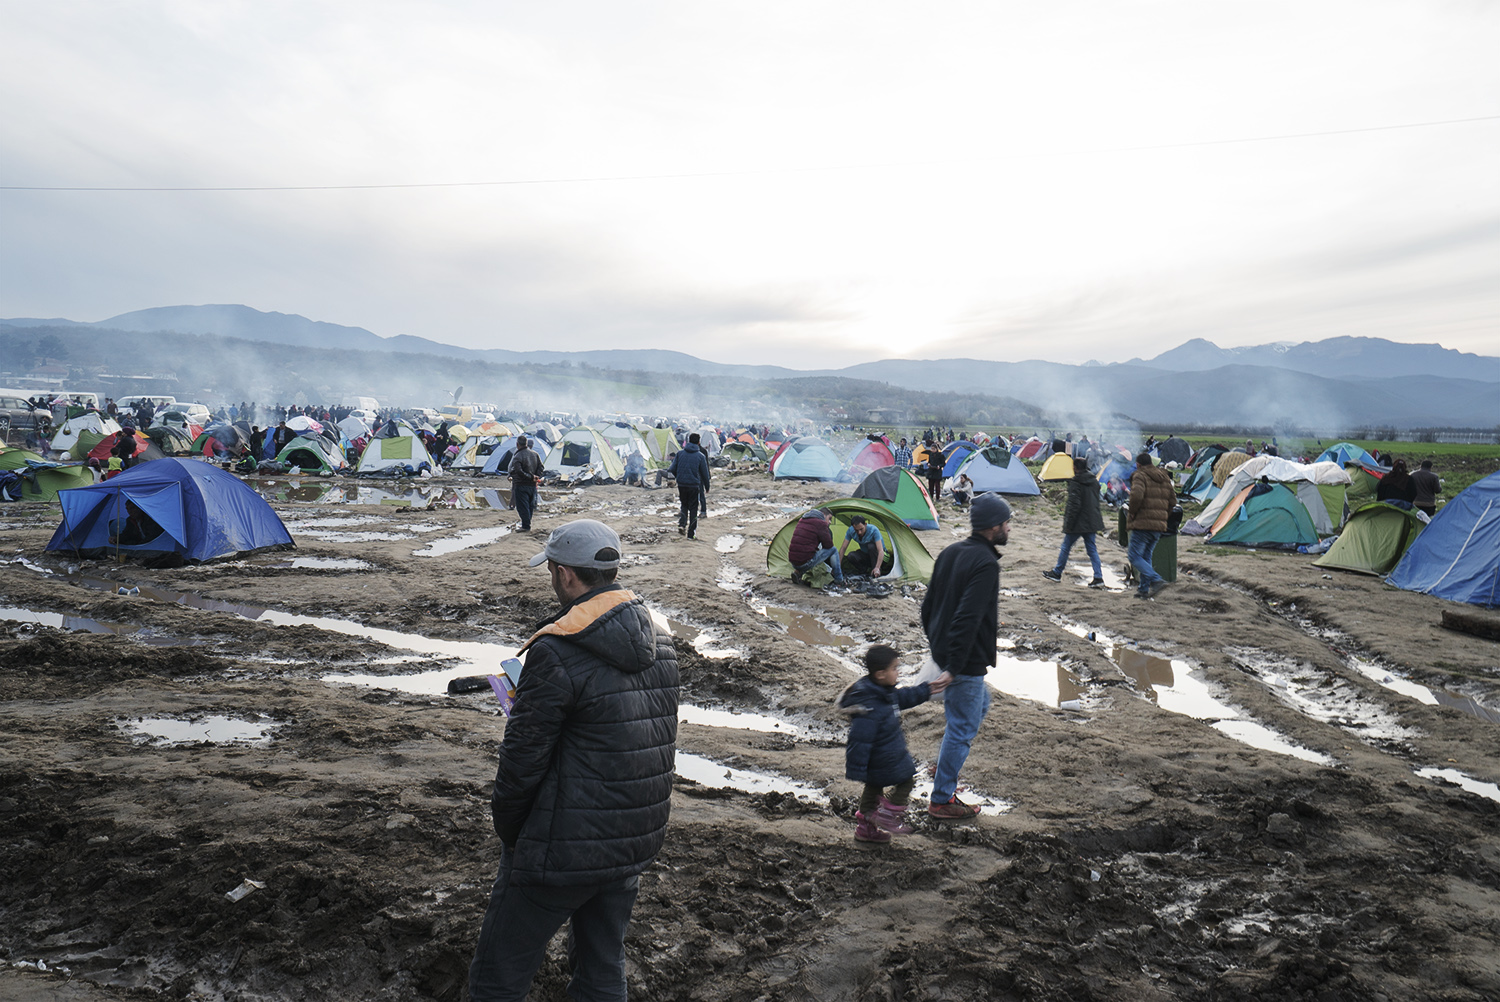 Greece, Idomeni border. Refugees walking down the muddy field, where camping tends have been set up in view of crossing the border. During the first week of March, 50 persons per day were allowed to cross the border with Macedona according to the date of arrival in Greece. As of the second week of March, border closed completely. No one was allowed to cross. As a result, that self-organized and not authorised refugee camp built arond Idomeni train -lane expaned dramatically. Greece, Idomeni border. The border between Greece and Macedonia has become a not recognized refugee camp where approx. 12.000 Syrian and iraqui refugees are awaiting for its reopening in the hope of achieving the German dream. As the meeting between EU and Turkey didn't lead to any changes on the ground, Syrian, Iraqui, Palestinians, Afghans, Pakistani refugees got trapped in that slot of the Greek territory with no way forward. No space for accommodating them is currently available in the existing camps (Diavata, Cherso and Nea Kavala) set up by the Greek Army. As such, prevented from crossing the border and not allowed to enter the camps, refugees will be relying on the international humanitarian assistance and ... on their hope, if it will be still there despite the life-threatening conditions in Idomeni. On March 18th, the EU and Turkey signed a new plan, according to which migrants arriving in Greece will be sent back to Turkey if they do not apply for asylum or their claim is rejected.